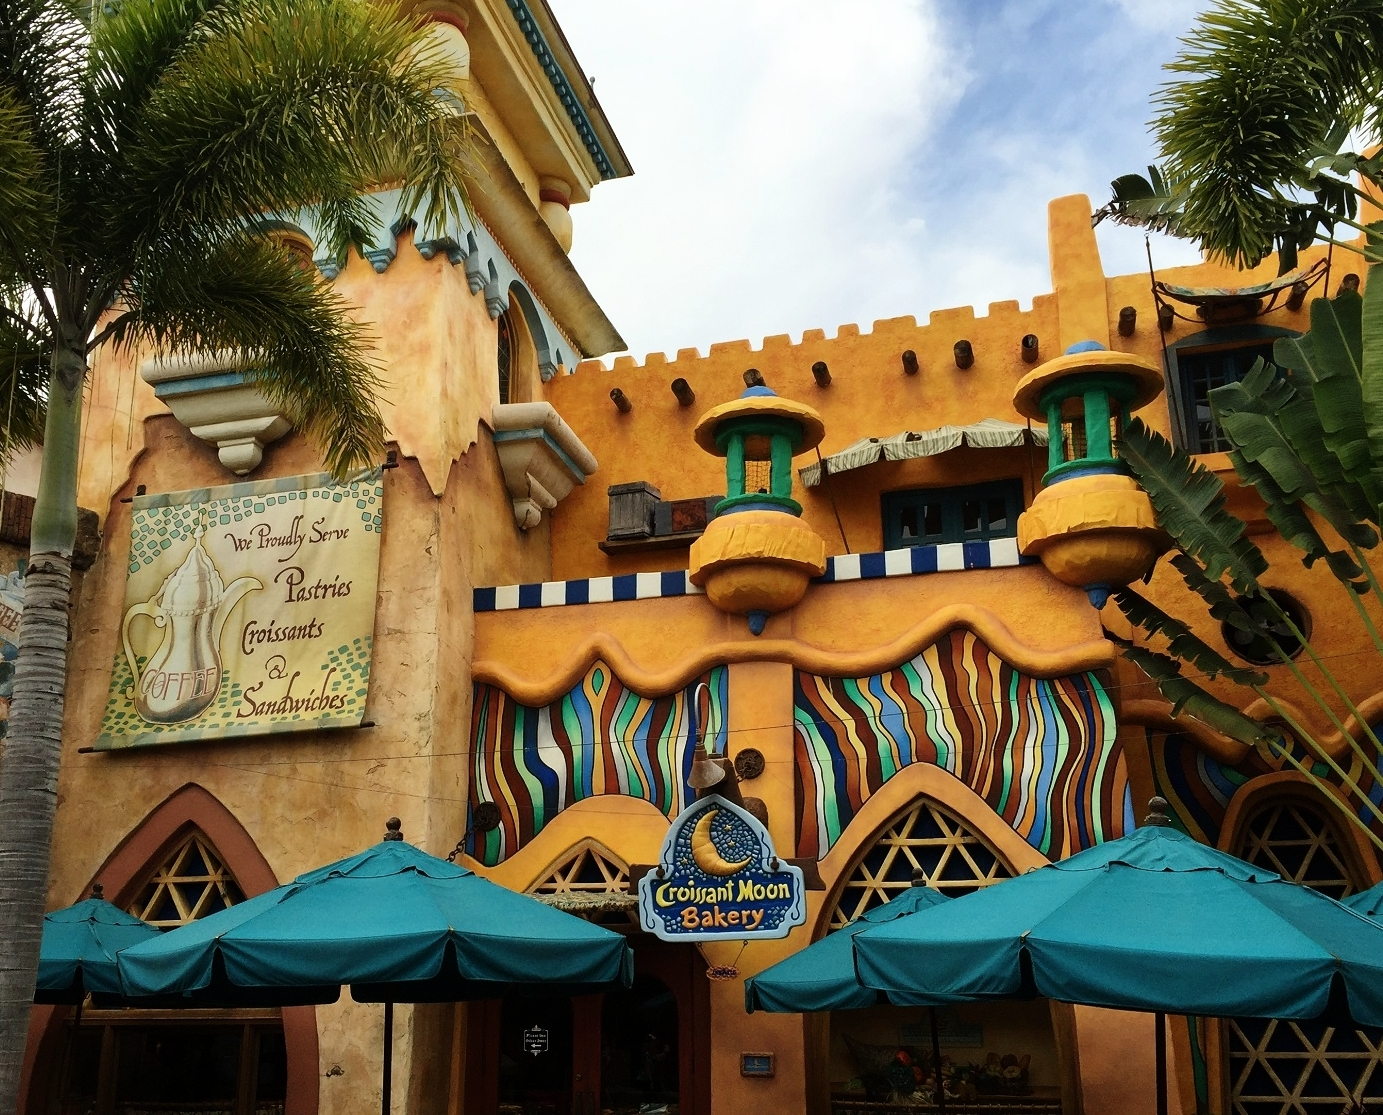 Croissant Moon Bakery in Islands of Adventure